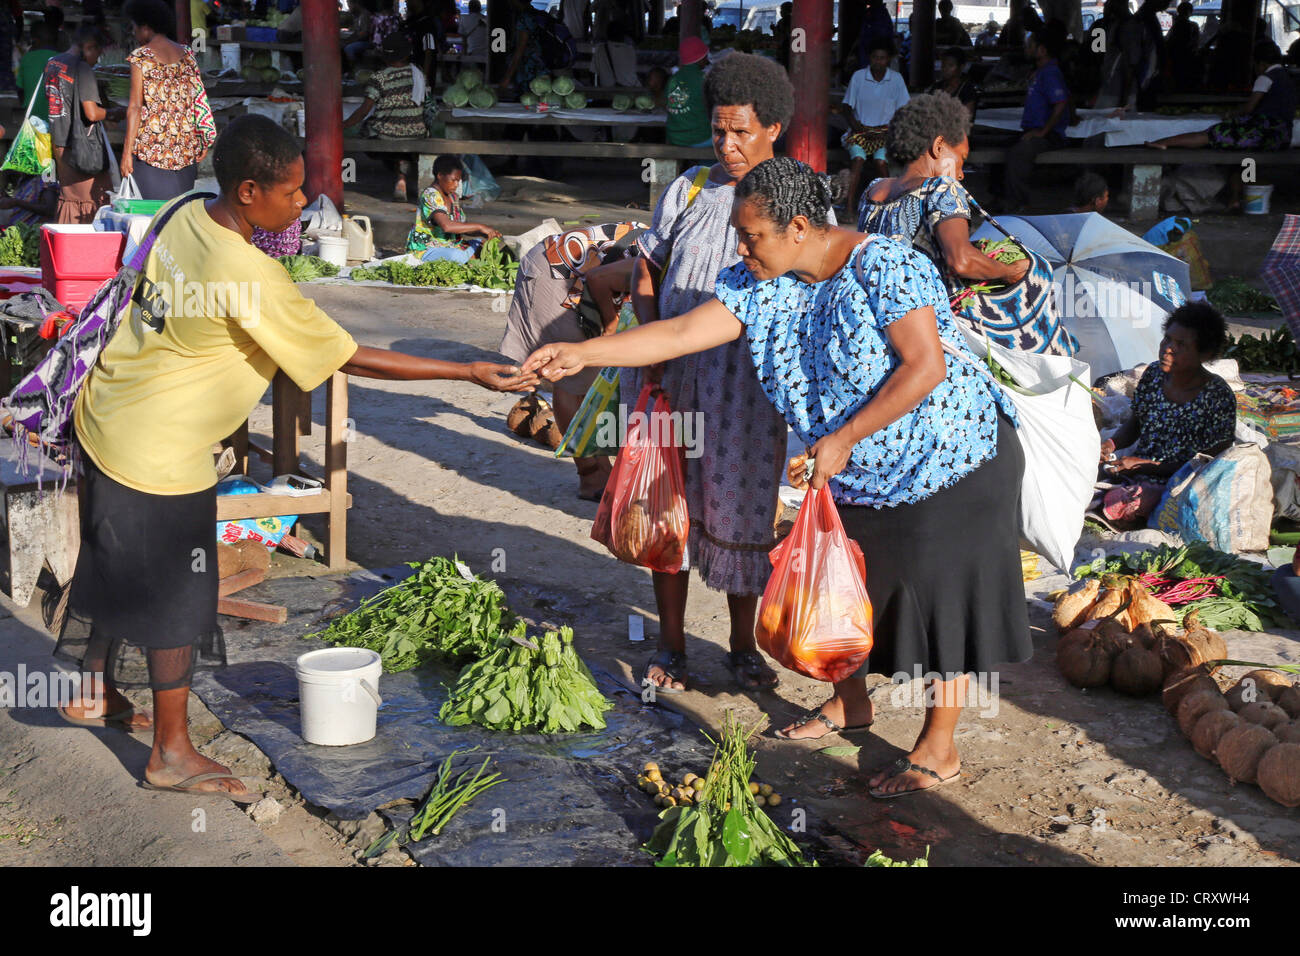 market in Madang, Papua New Guinea - Stock Image